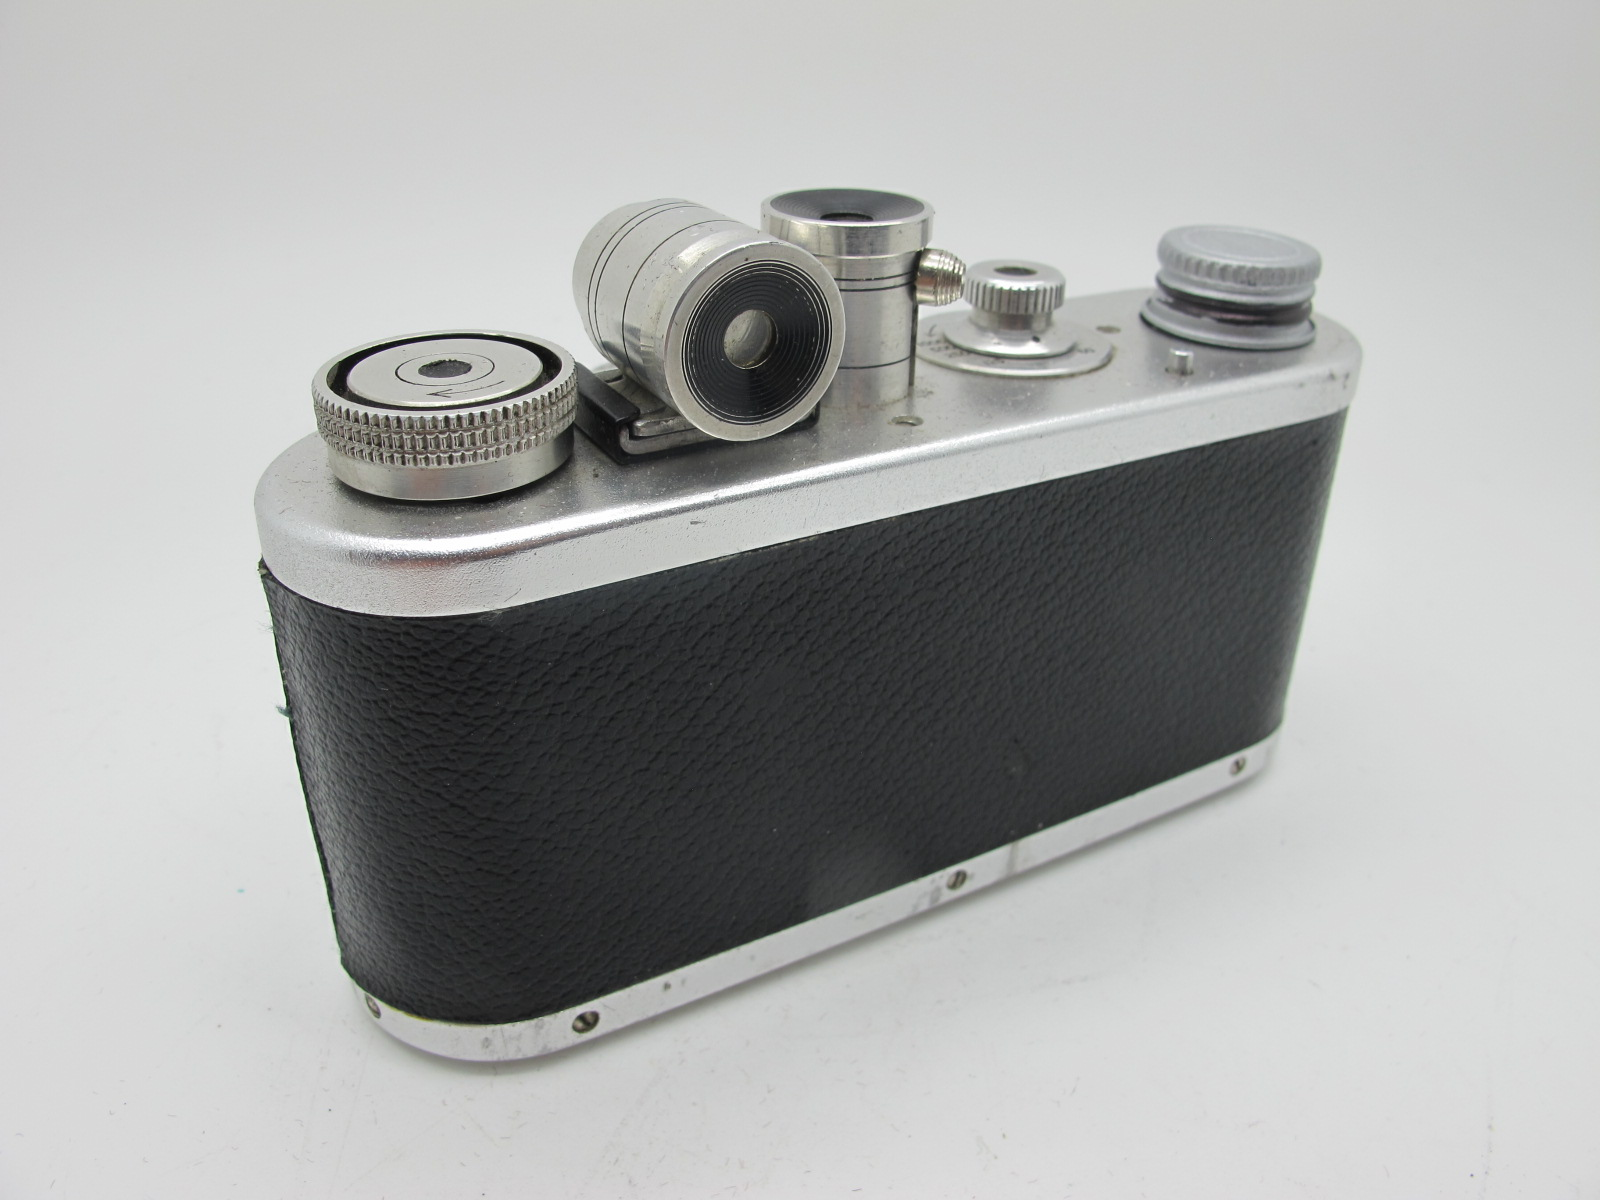 Saraber Goslar Finetta 88, Edika Flex, plus two other camera's in brown leather cases. (4) - Image 3 of 13